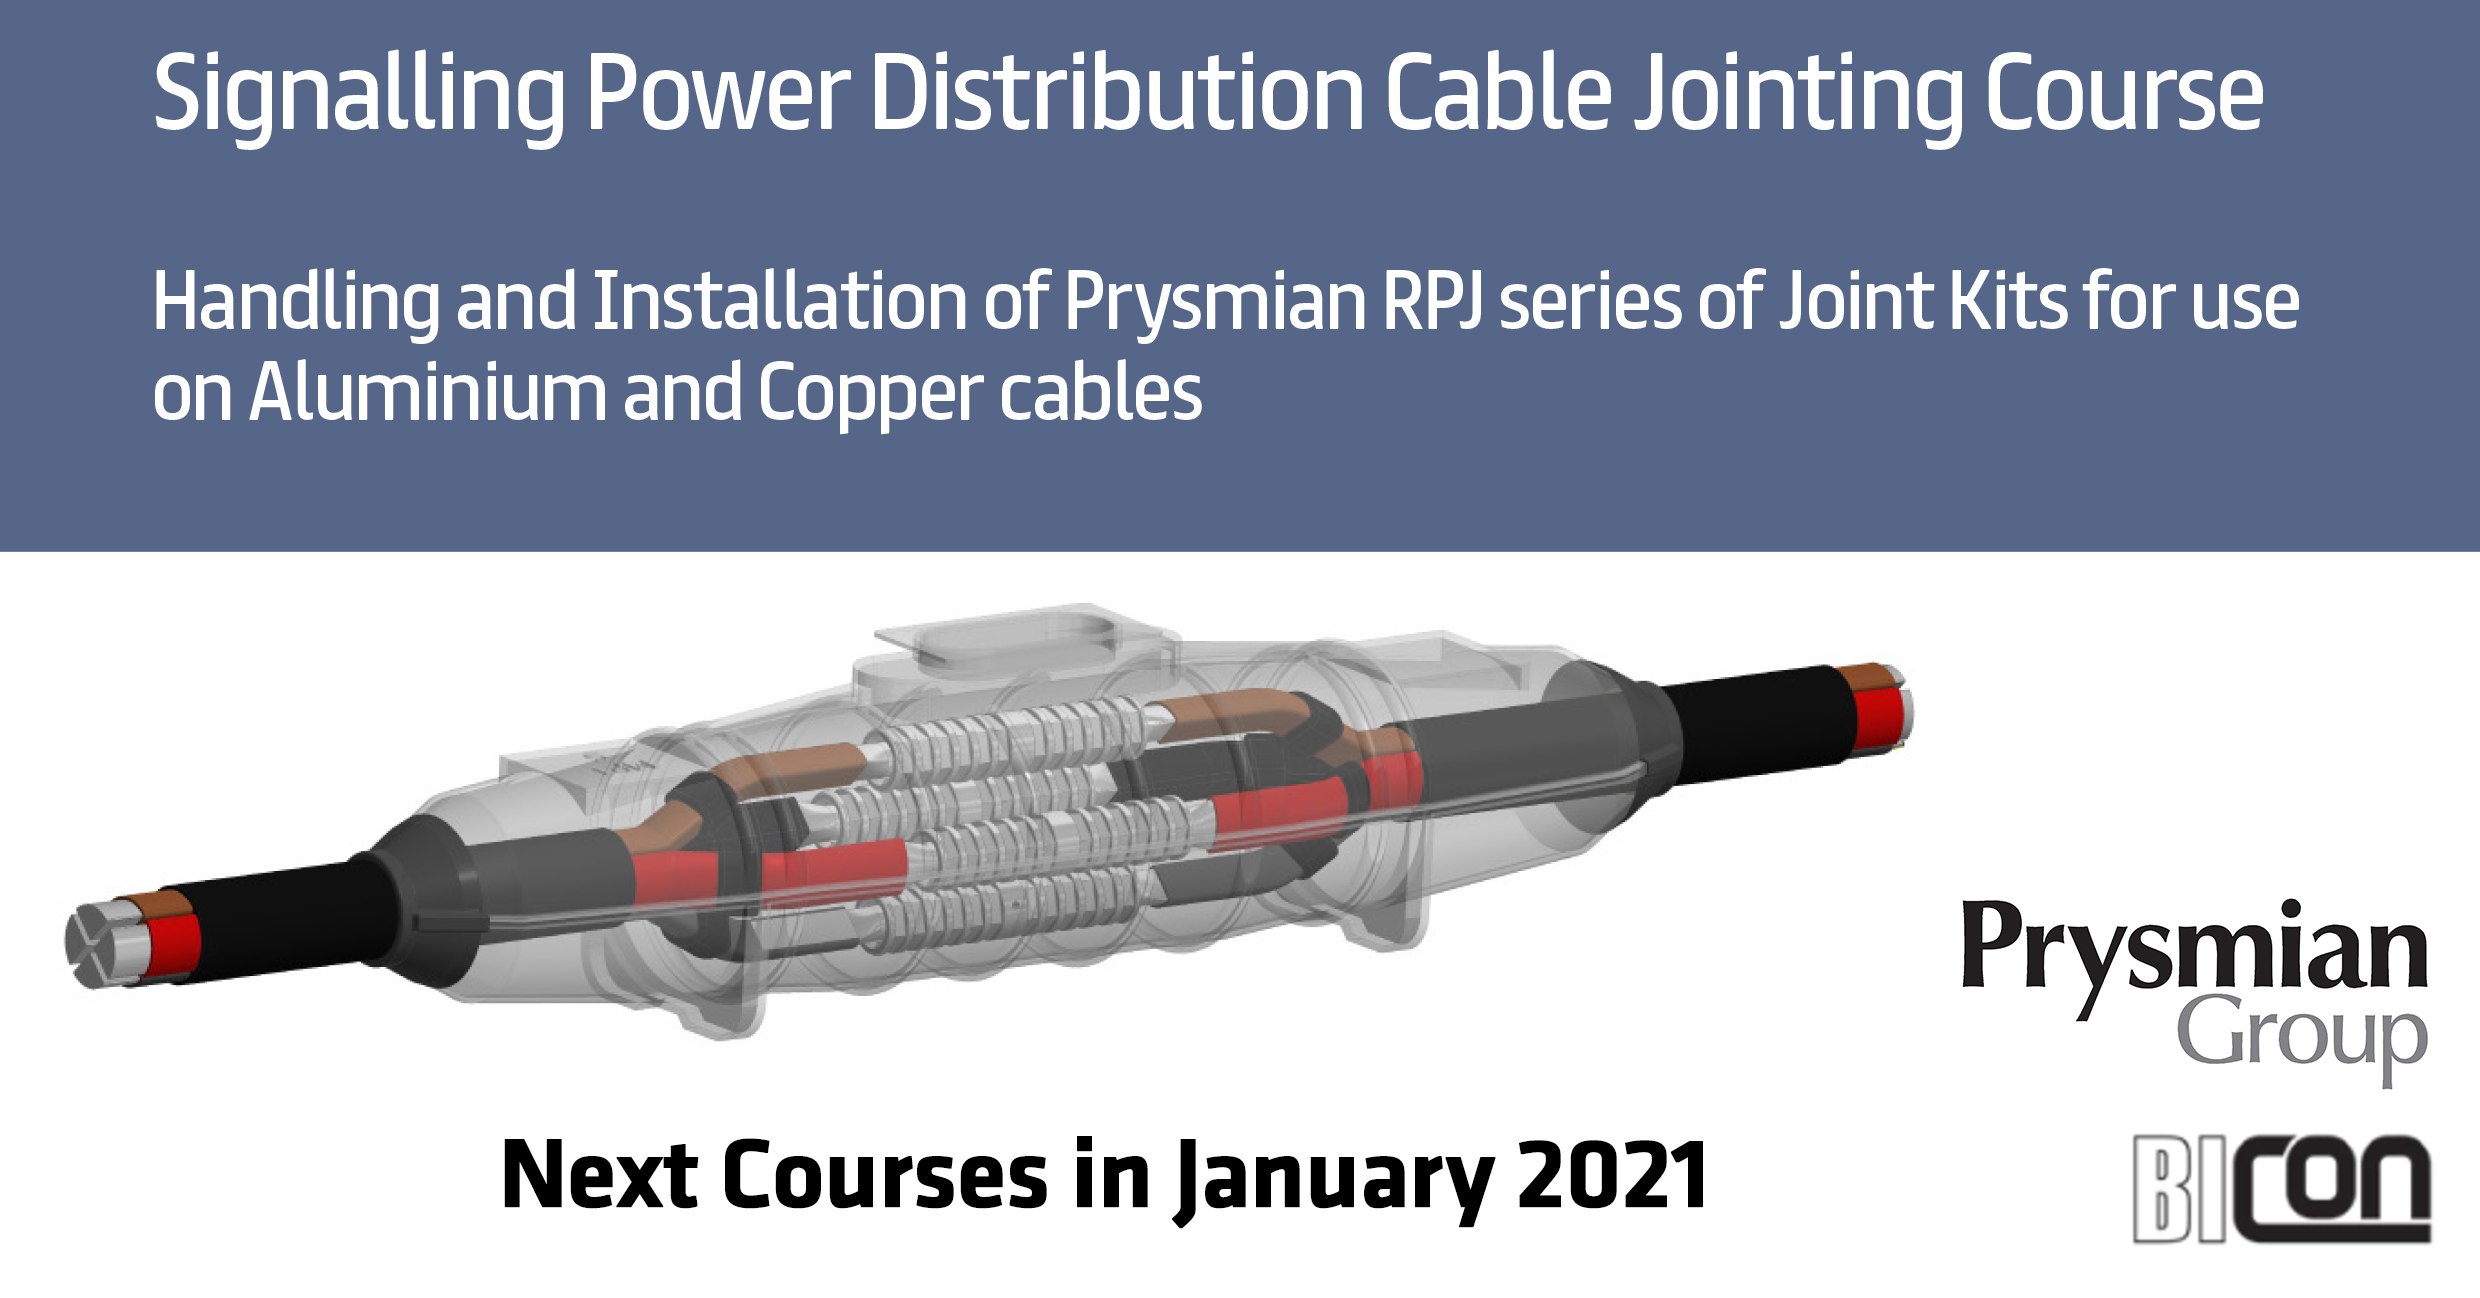 Signalling Power Distribution Cable Jointing Course by Prysmian